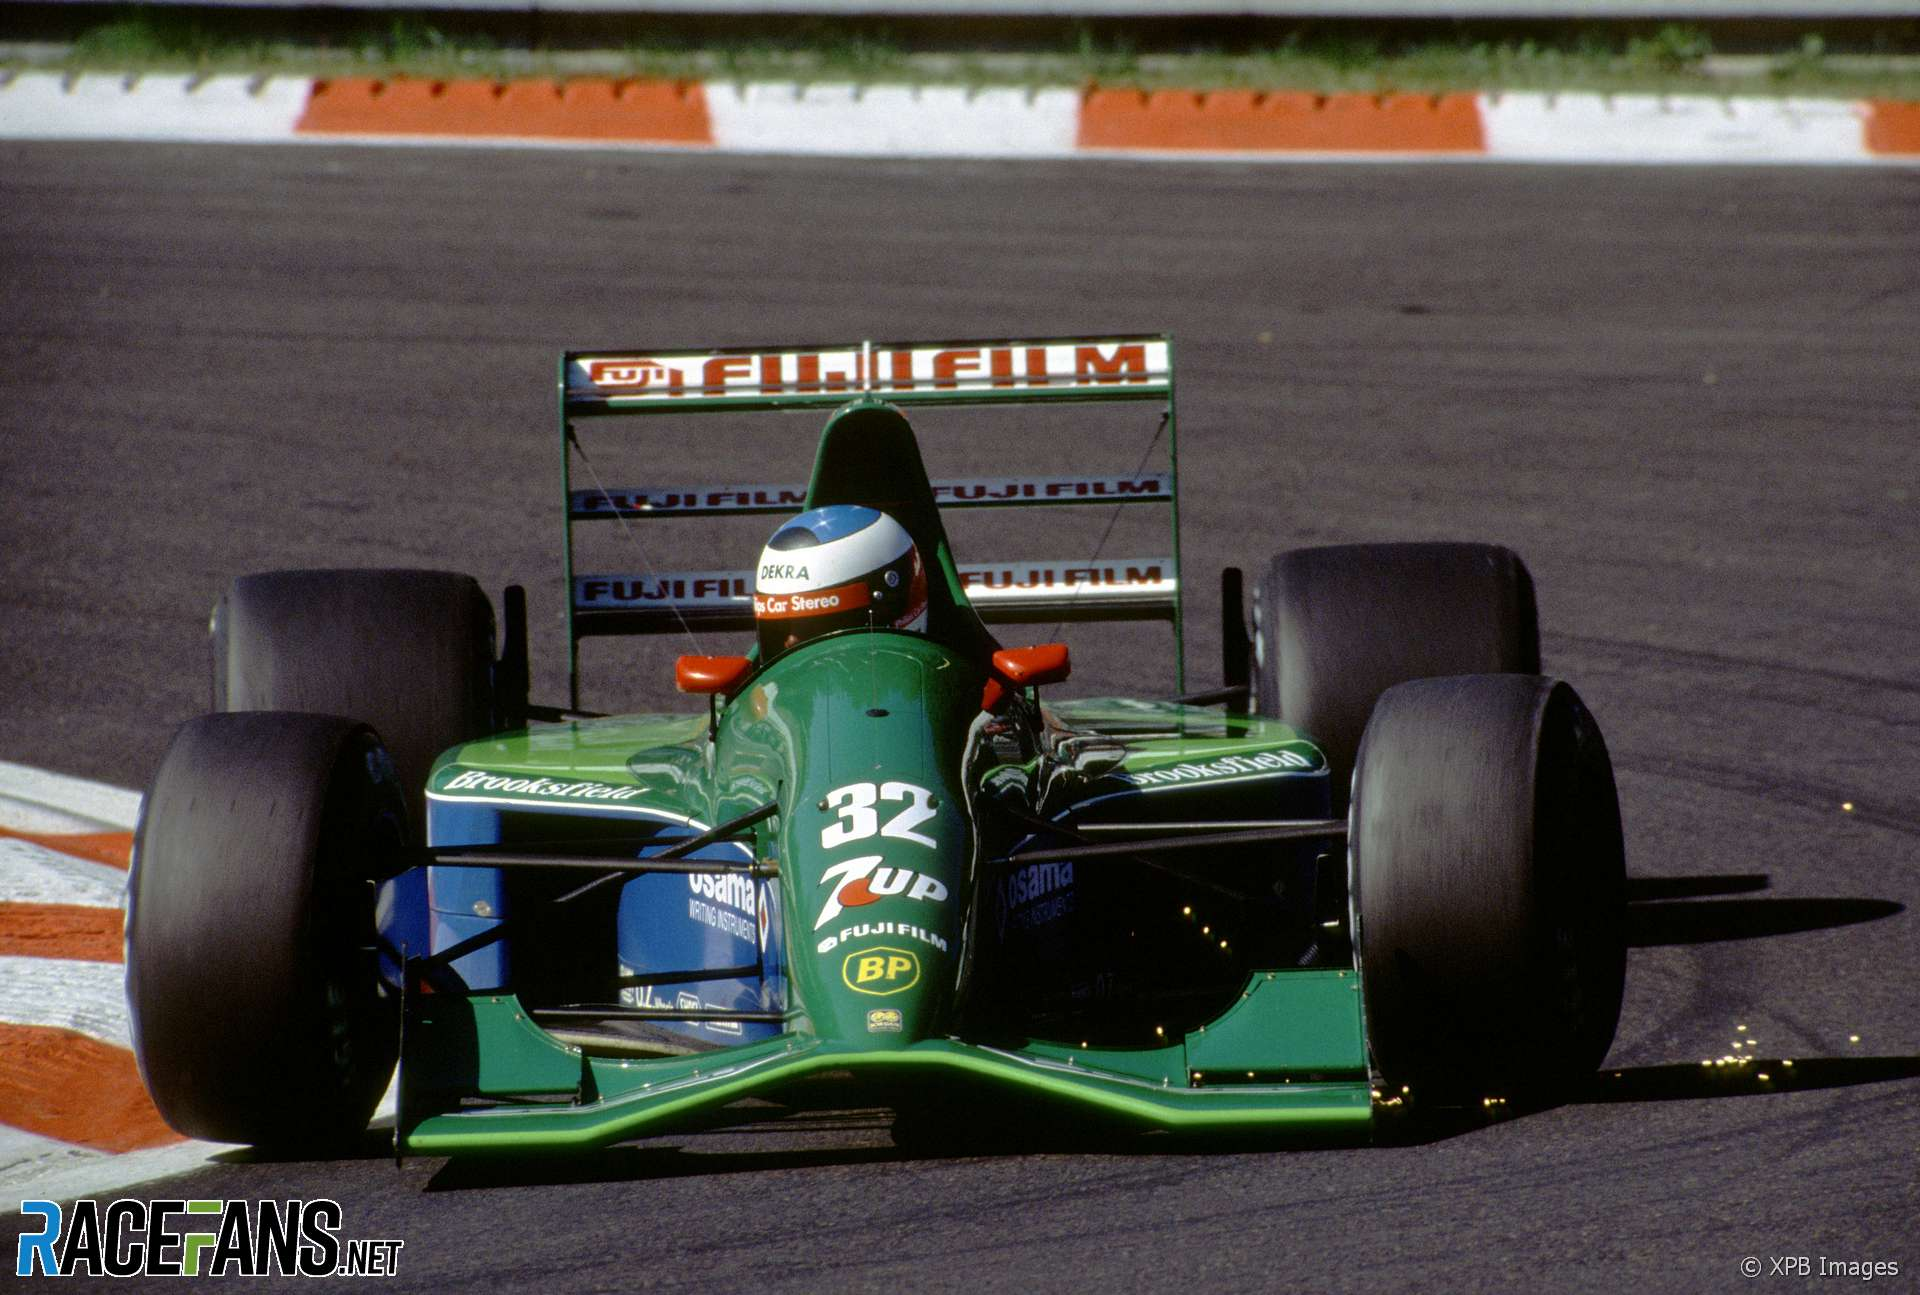 1991 Belgian Gp Michael Schumacher S Remarkable F1 Debut F1 Fanatic